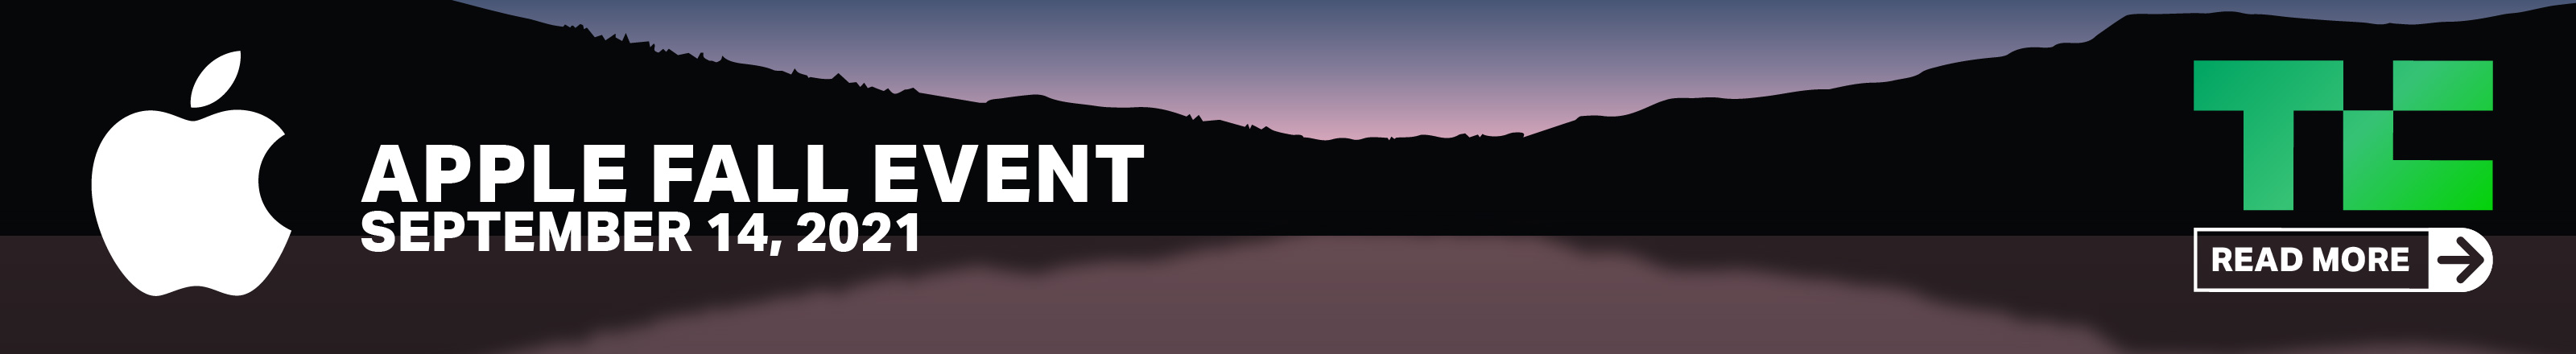 Read more about Apple's Fall 2021 Event on TechCrunch